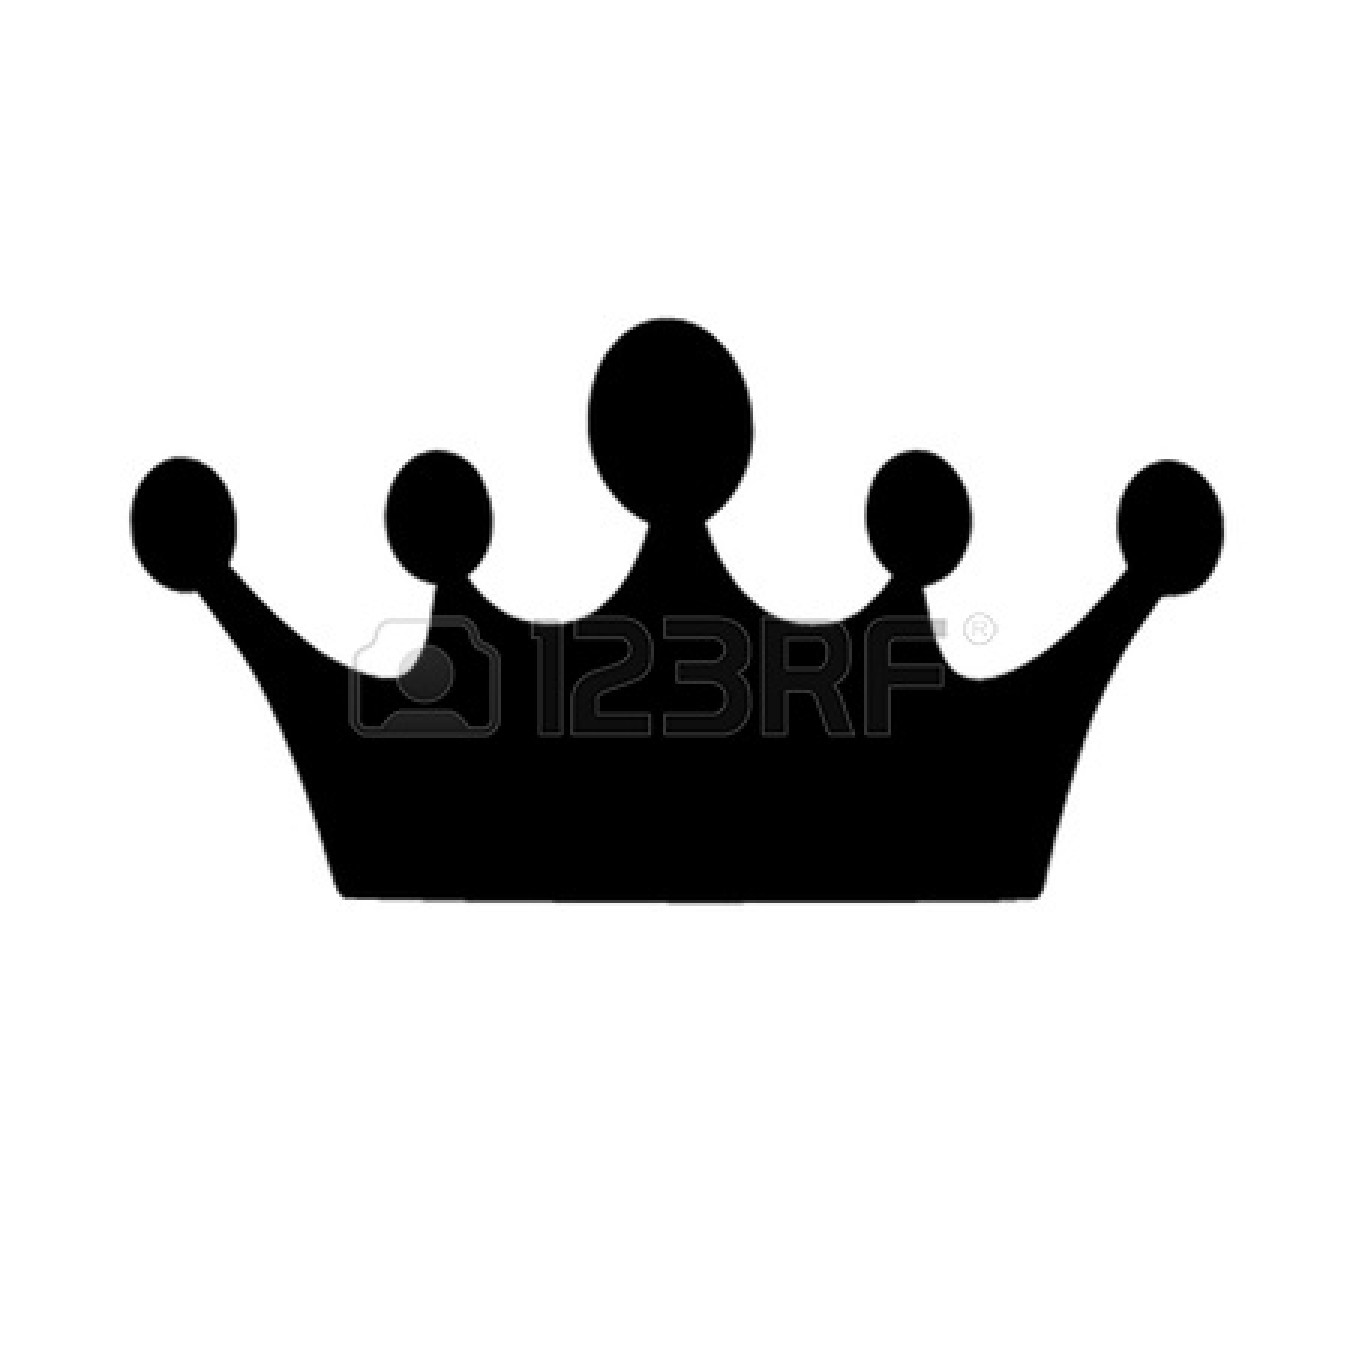 ... crown-clipart-transparent-background-crown-clip-art-UXxRWQ-clipart.jpg